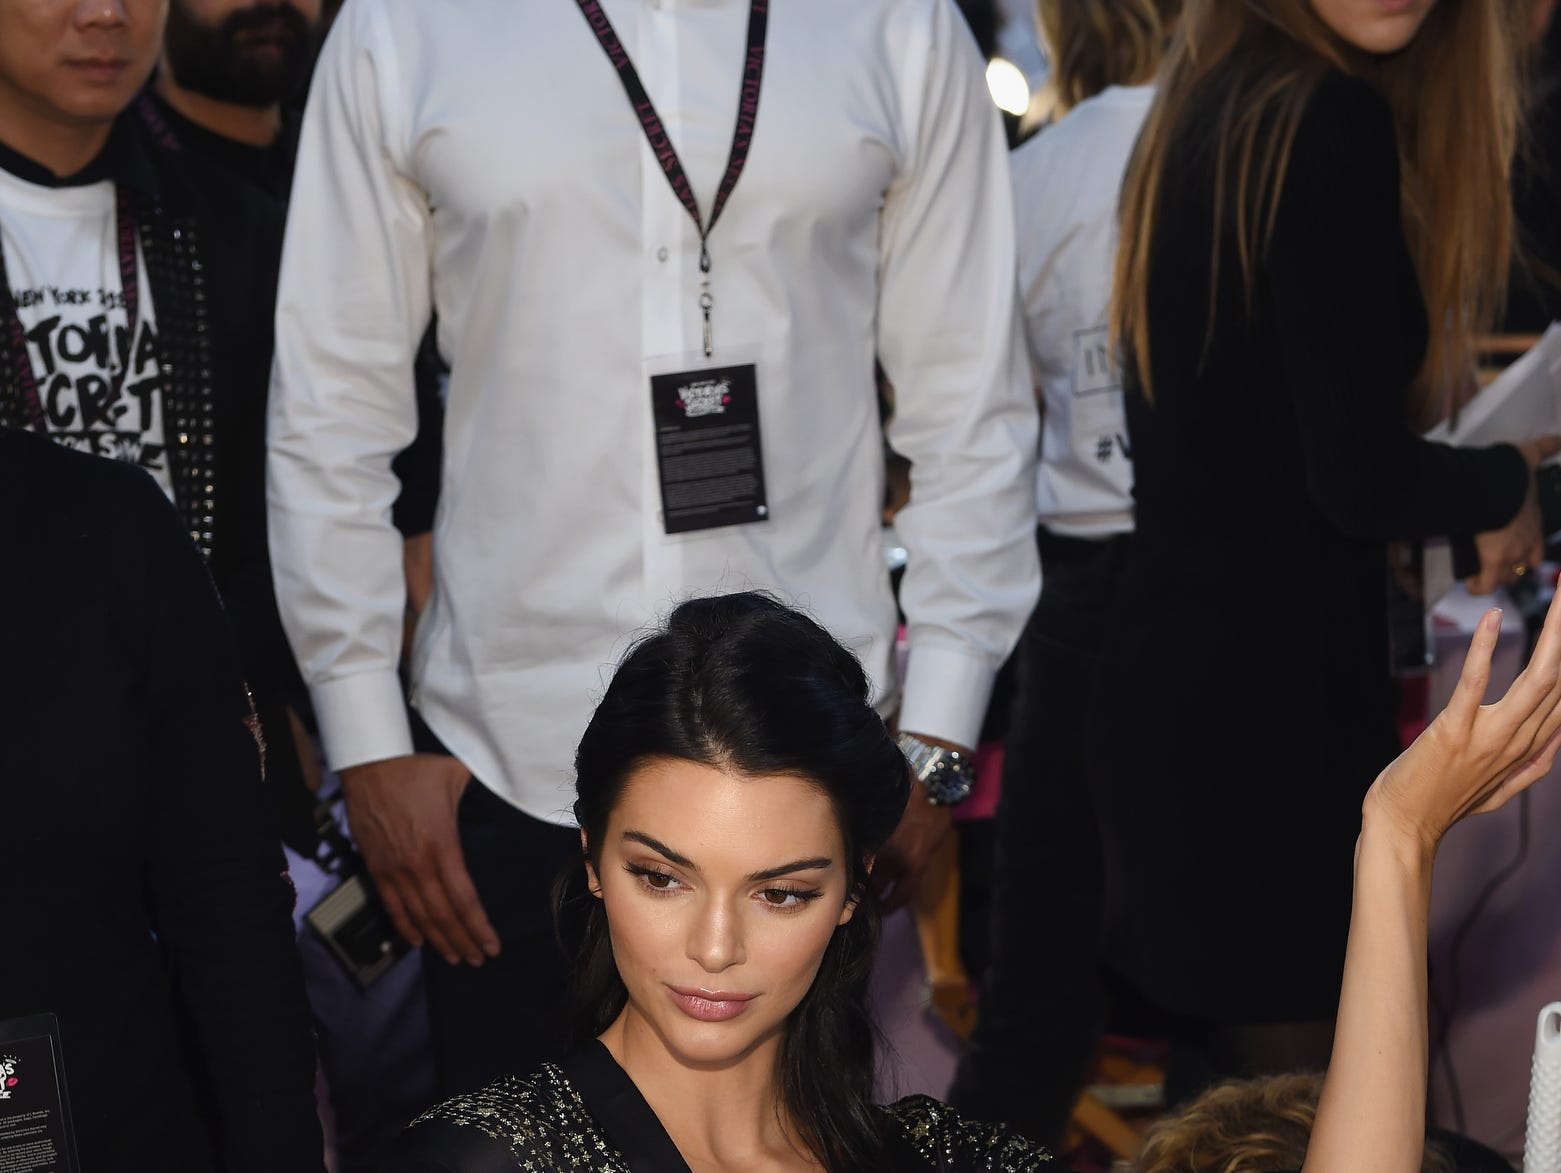 Kendall Jenner prepares backstage during the  Victoria's Secret Fashion Show.